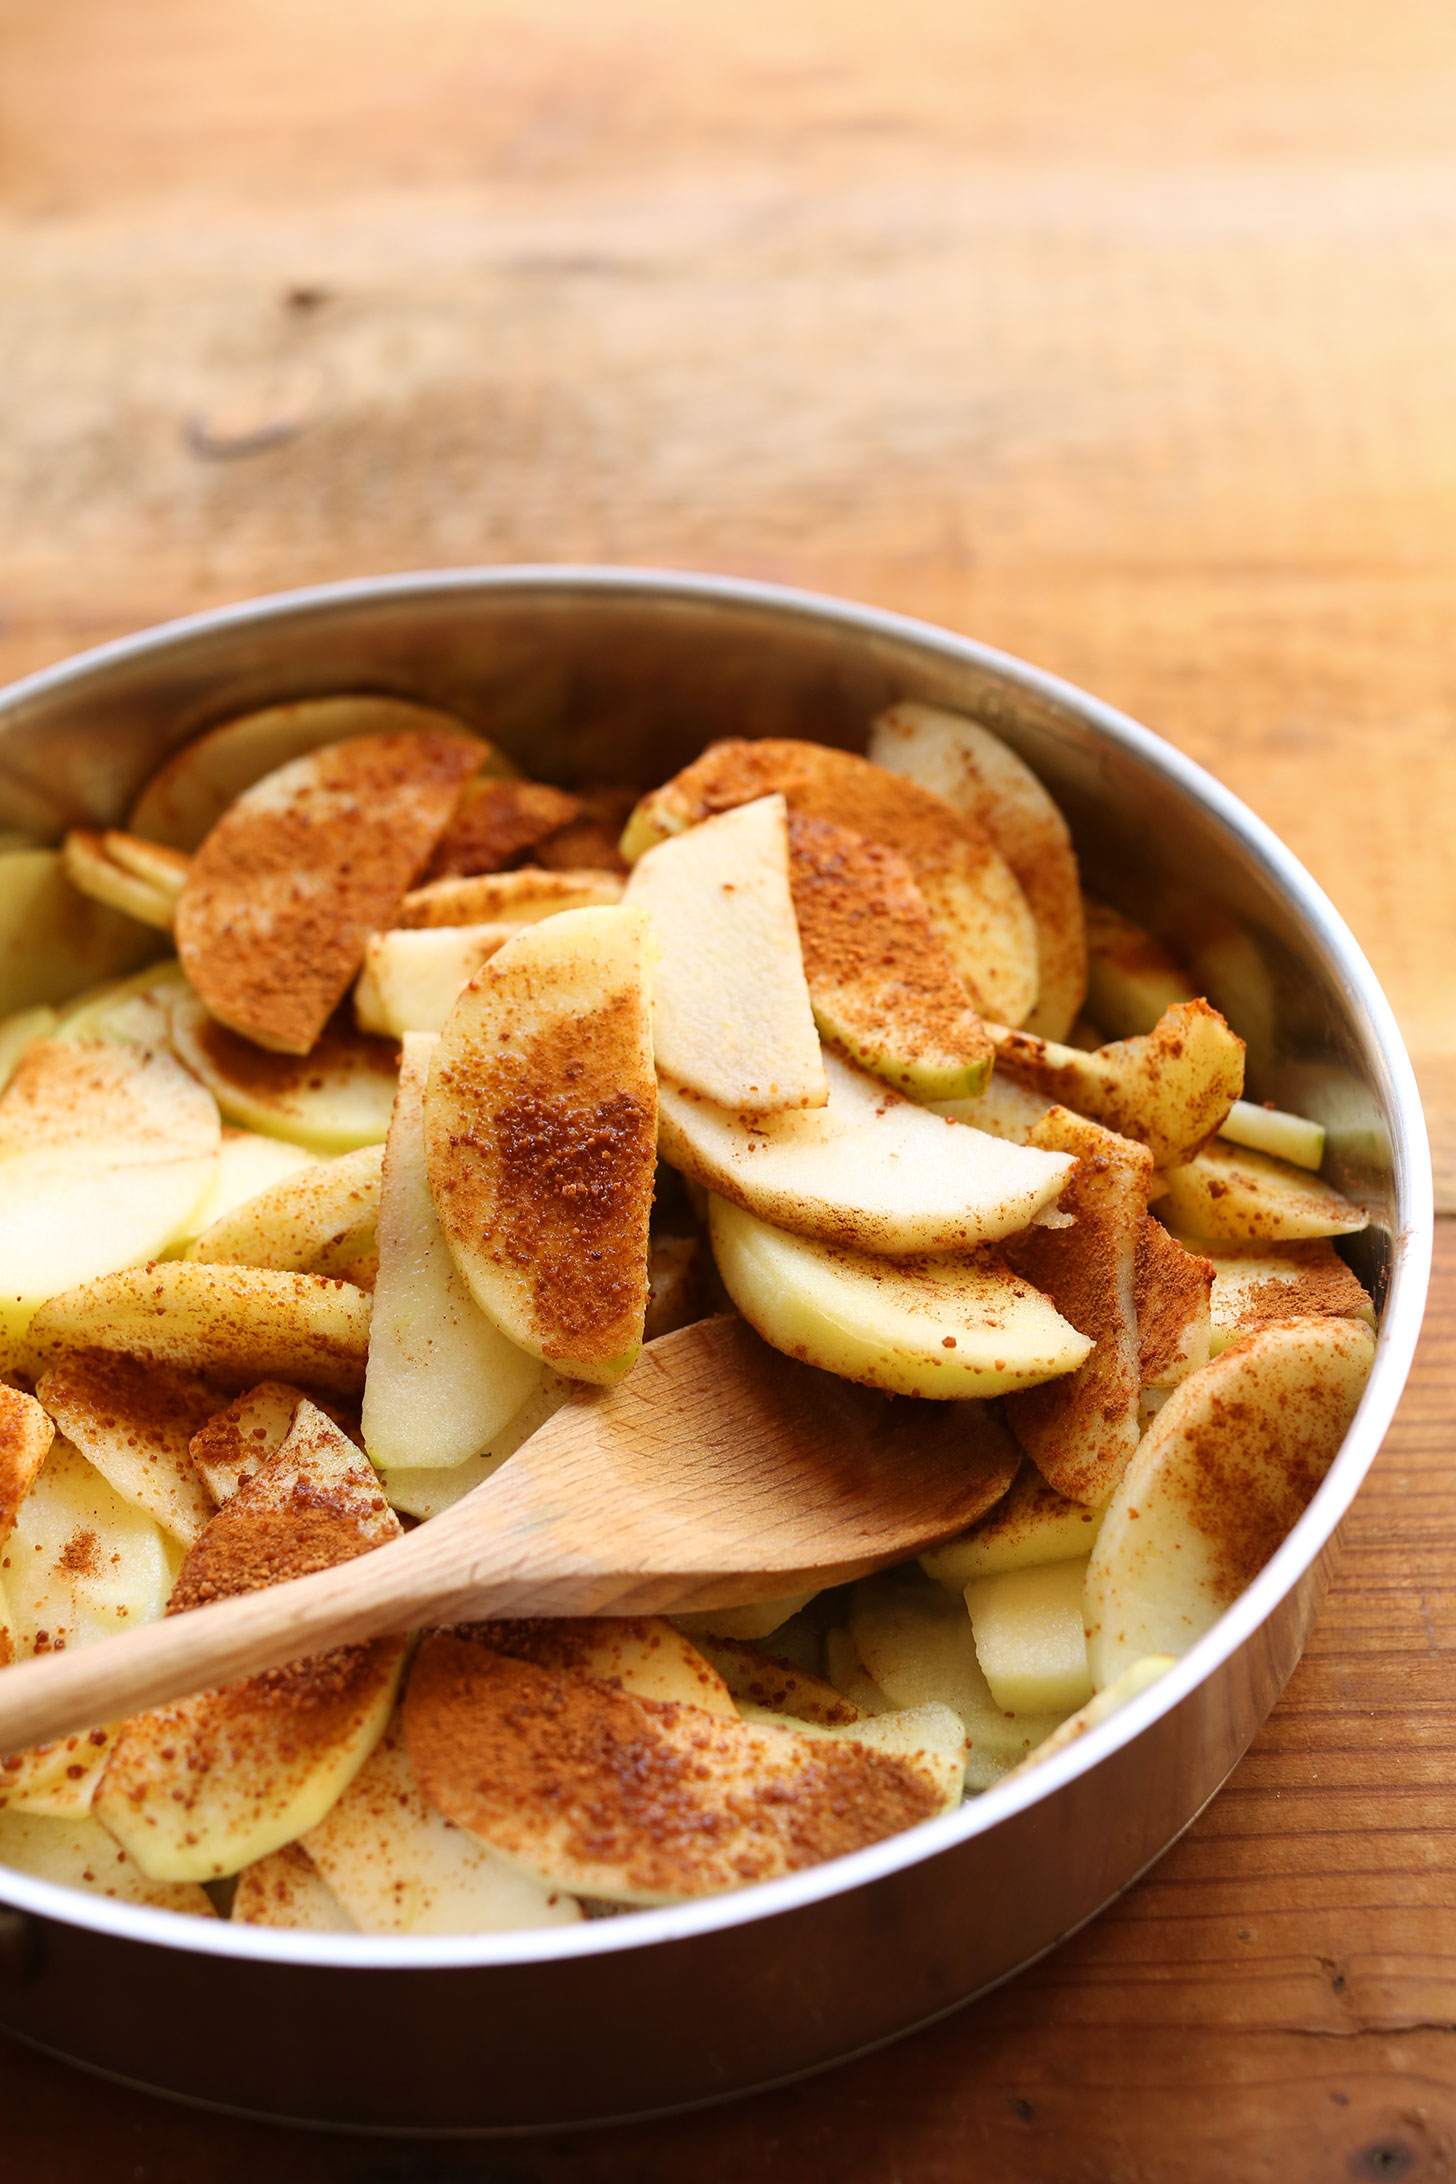 Stirring together a skillet with sliced apples and cinnamon